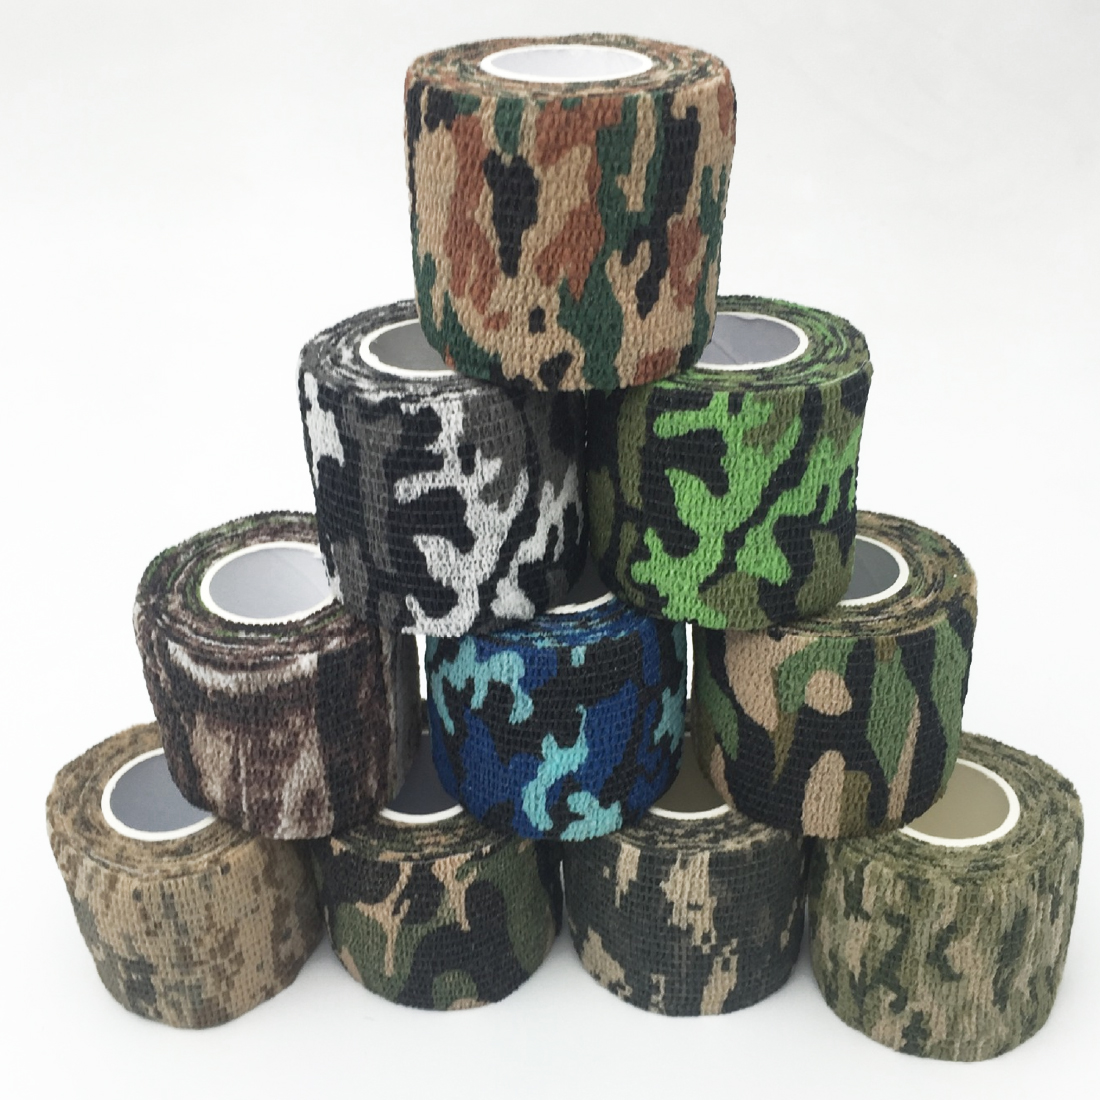 Army Camo Camouflage Elastic Tape Durable Disposable Waterproof Nonwoven Wrist Wound Bandage Sports Support Tatoo Grip Wrap